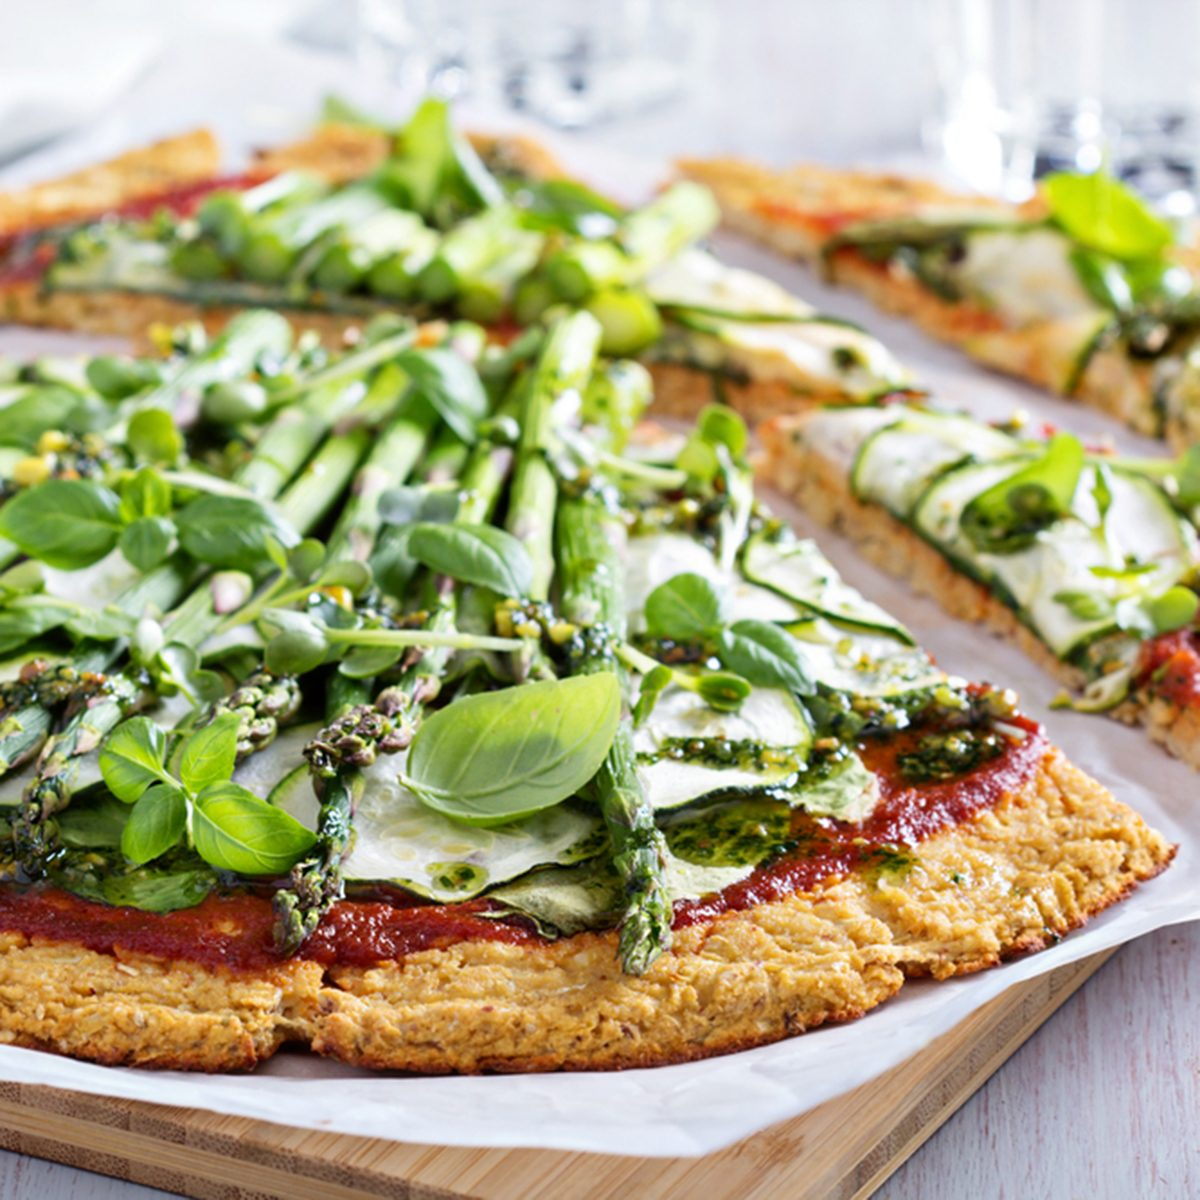 Cauliflower green pizza with spinach, zucchini and asparagus